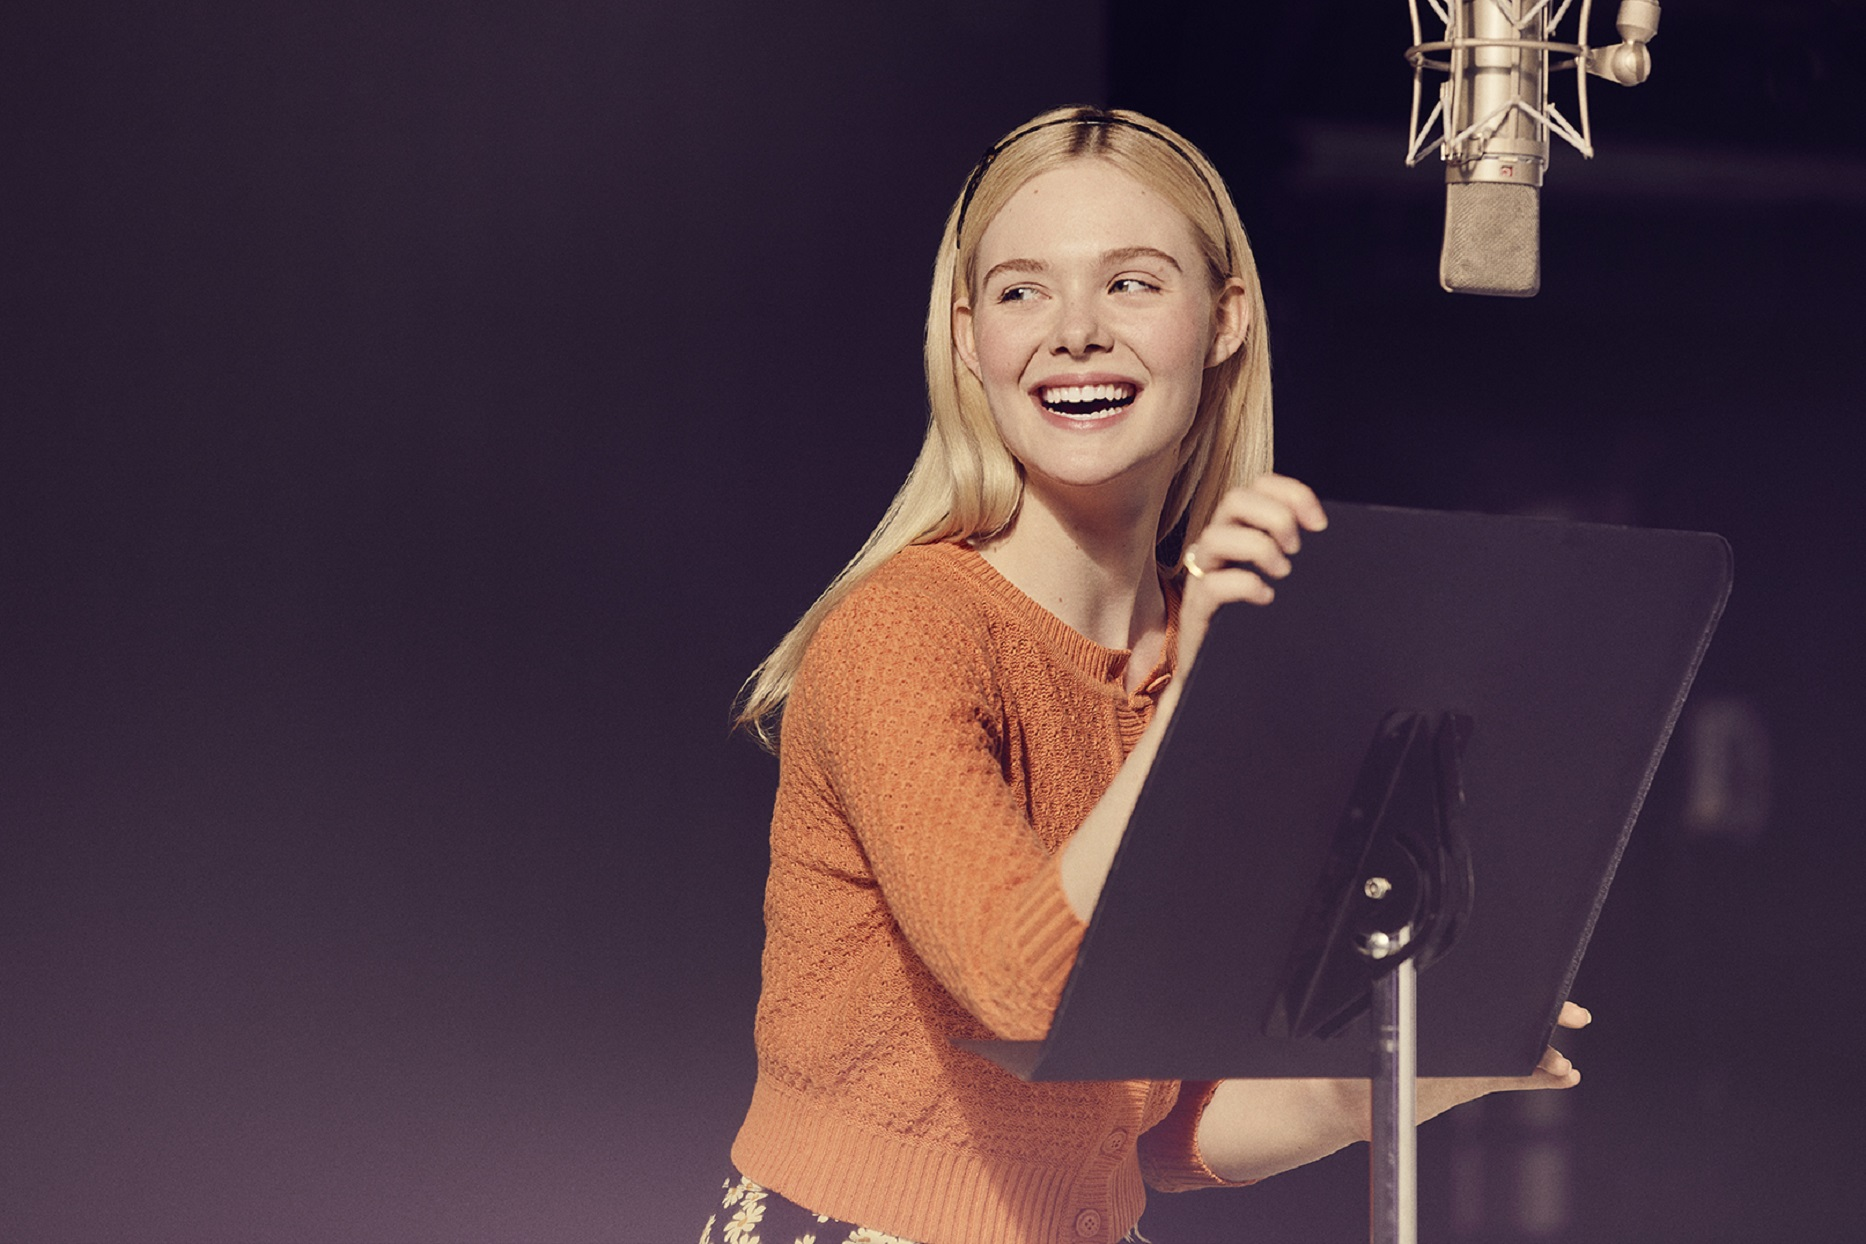 Elle Fanning in Studio Recording